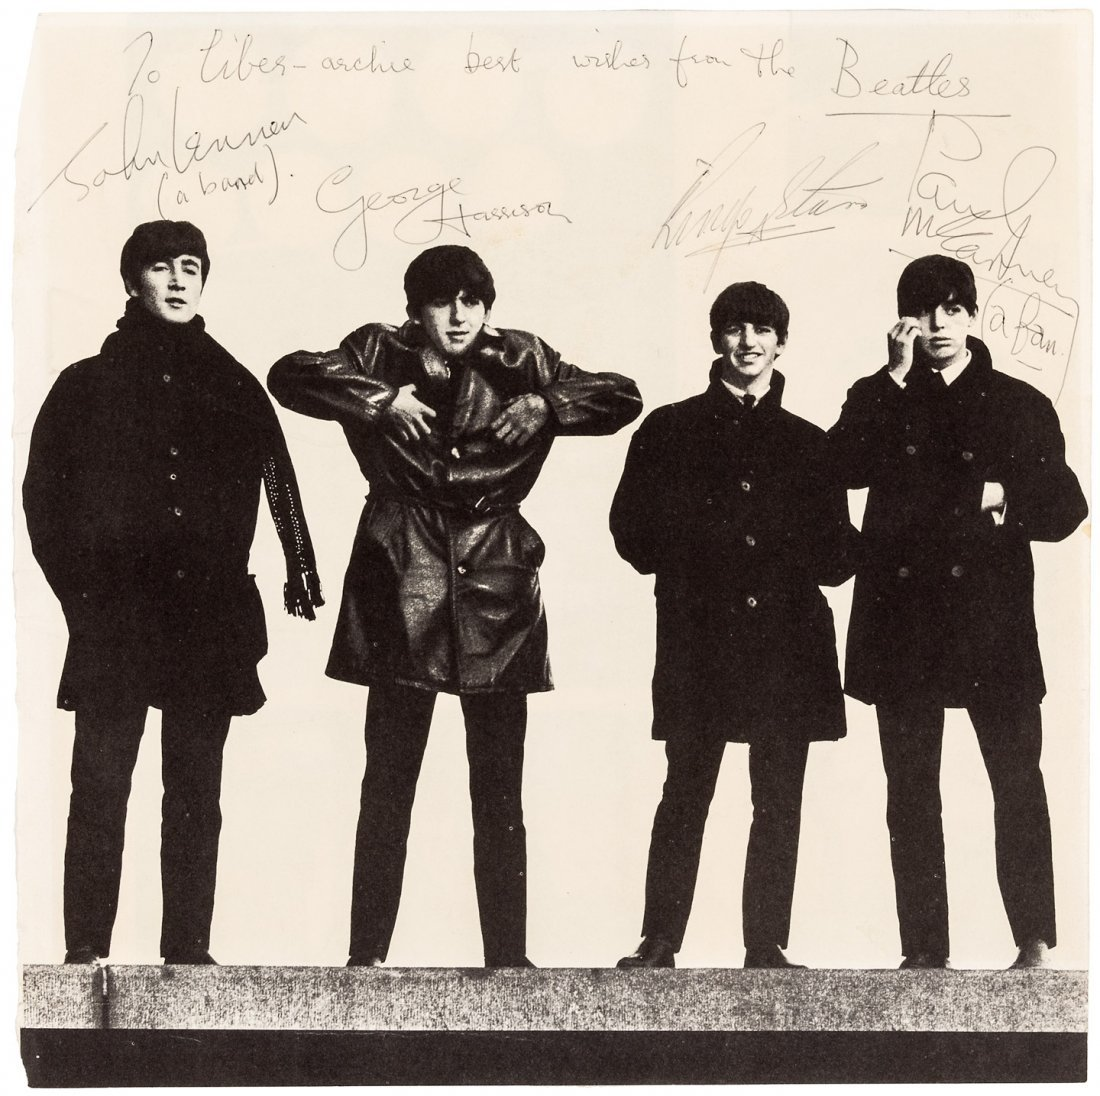 Signed by all four Beatles